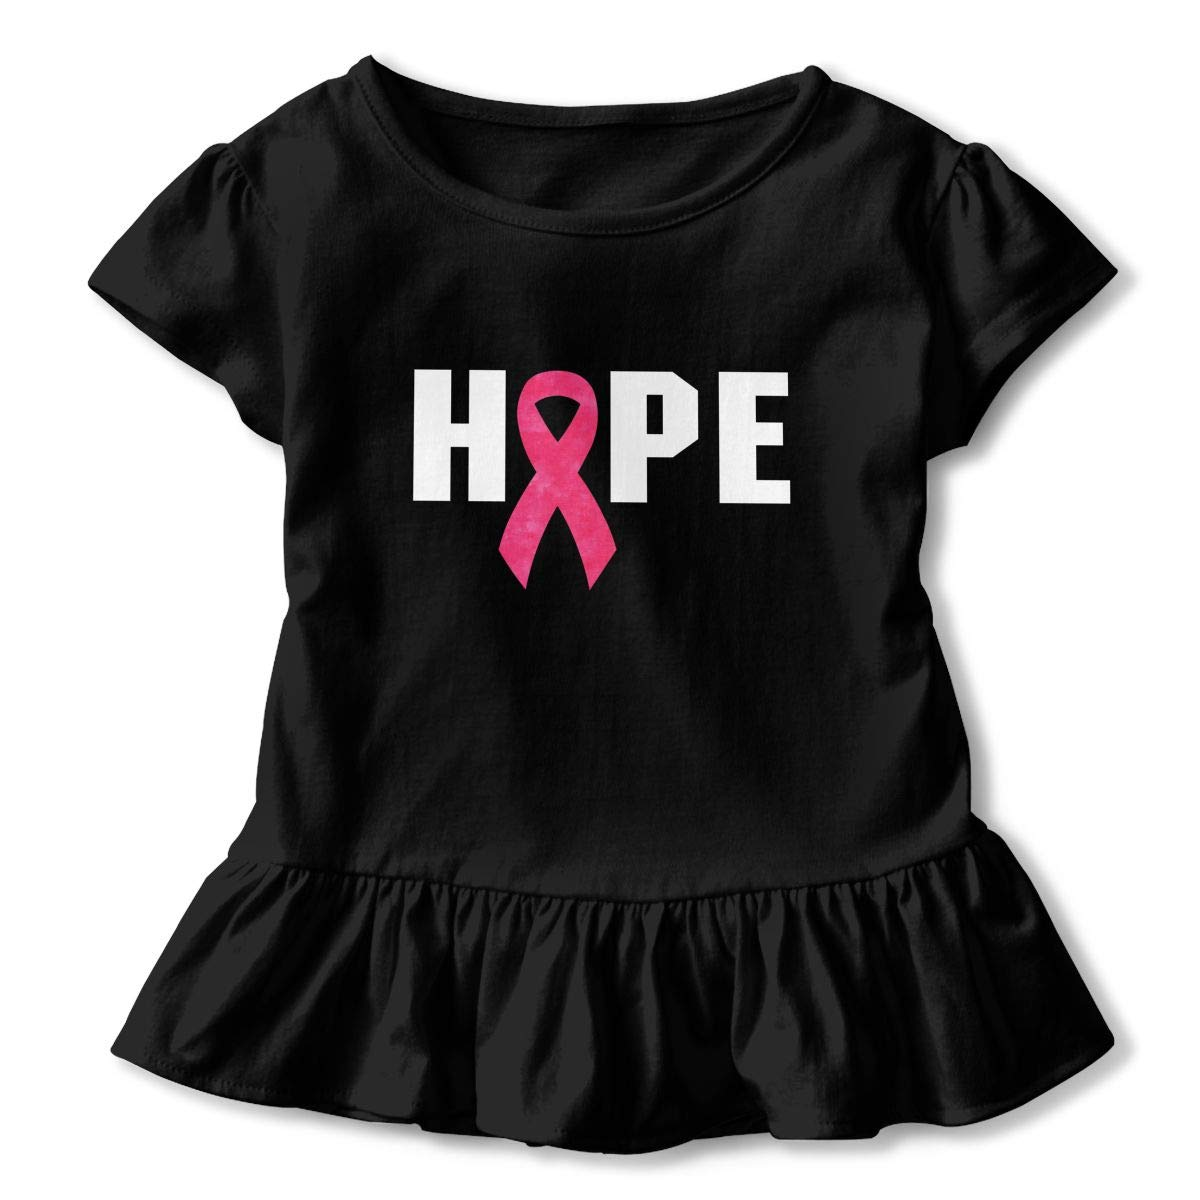 Clarissa Bertha Breast Cancer Awareness Hope Toddler Baby Girls Short Sleeve Ruffle T-Shirt